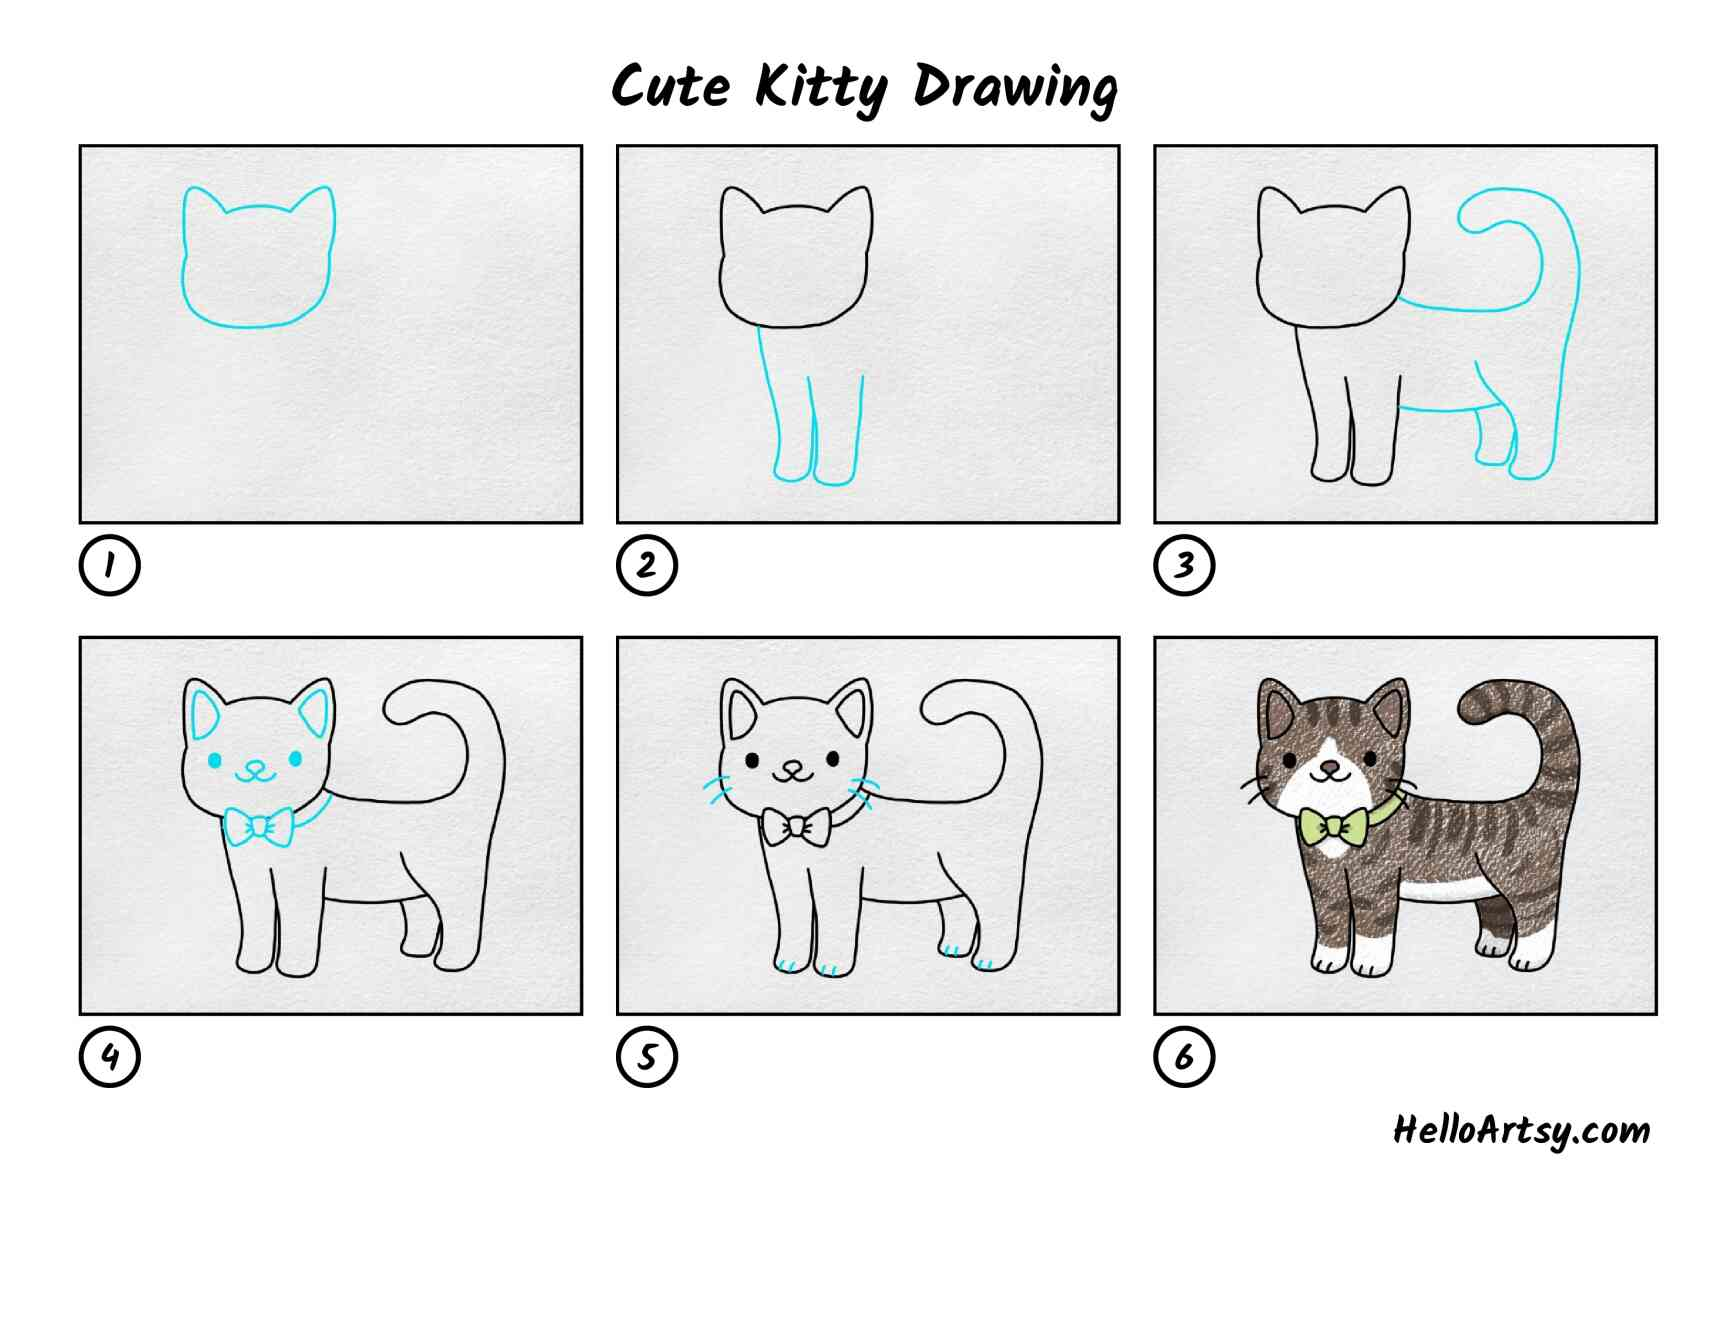 Cute Kitty Drawing: All Steps